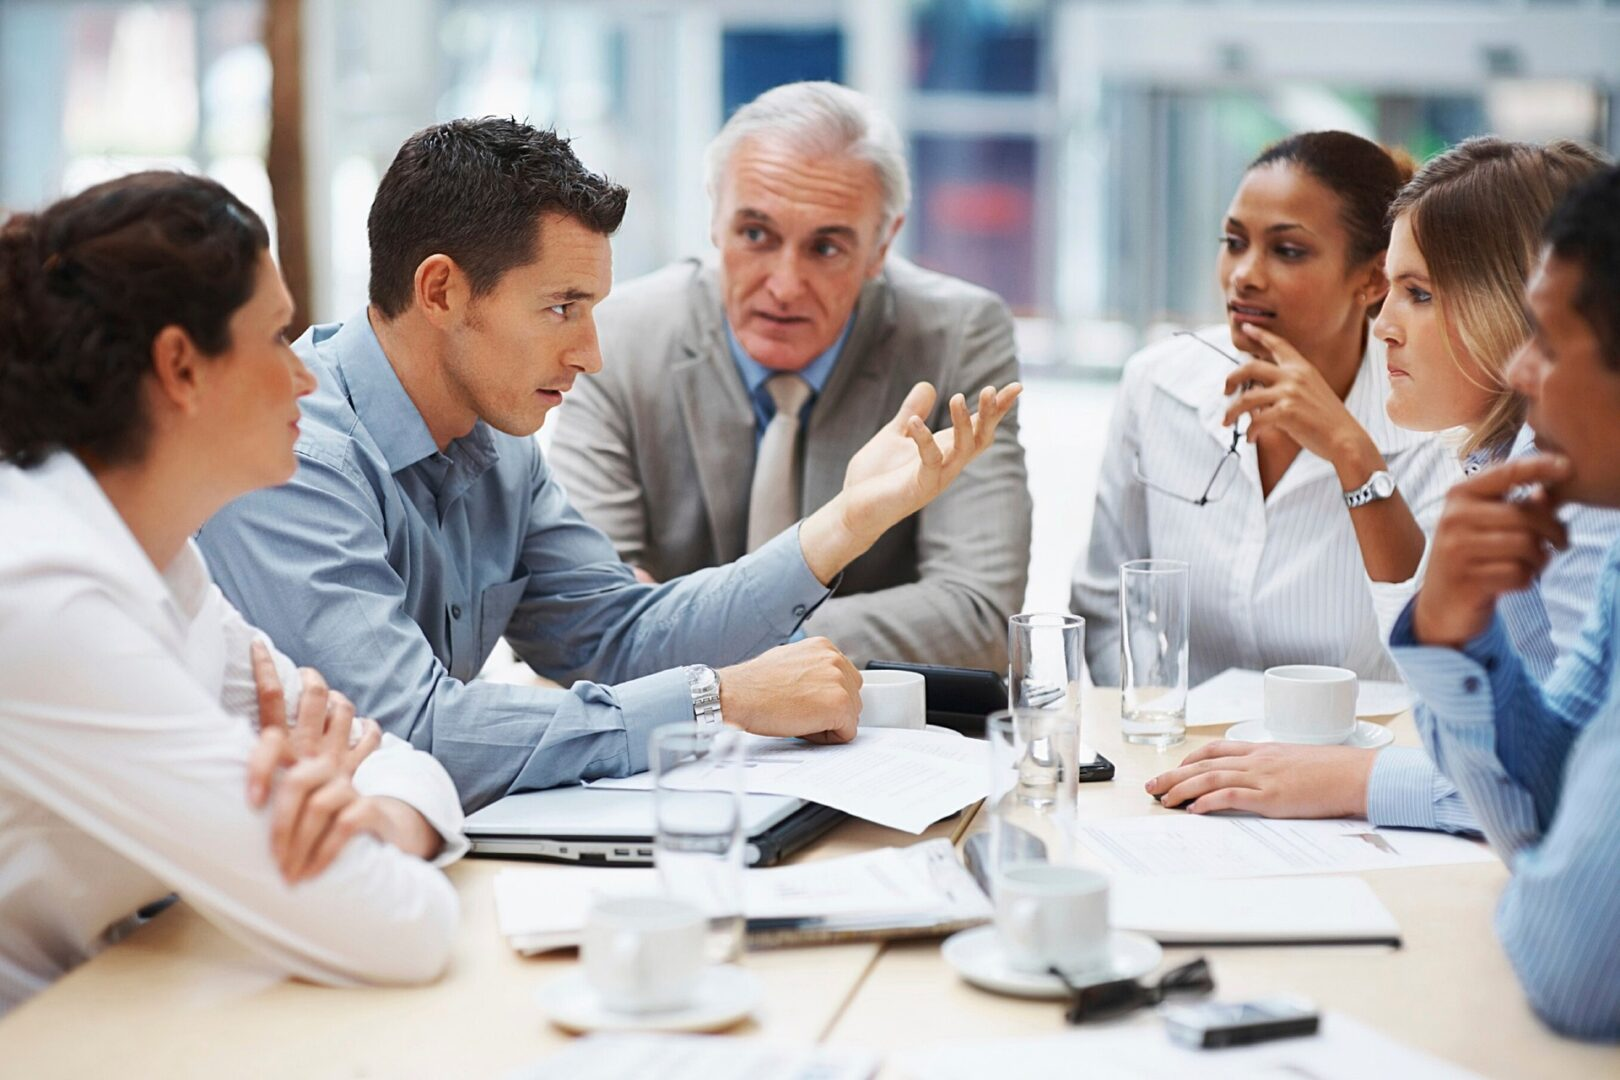 business-meeting-5395567_1920